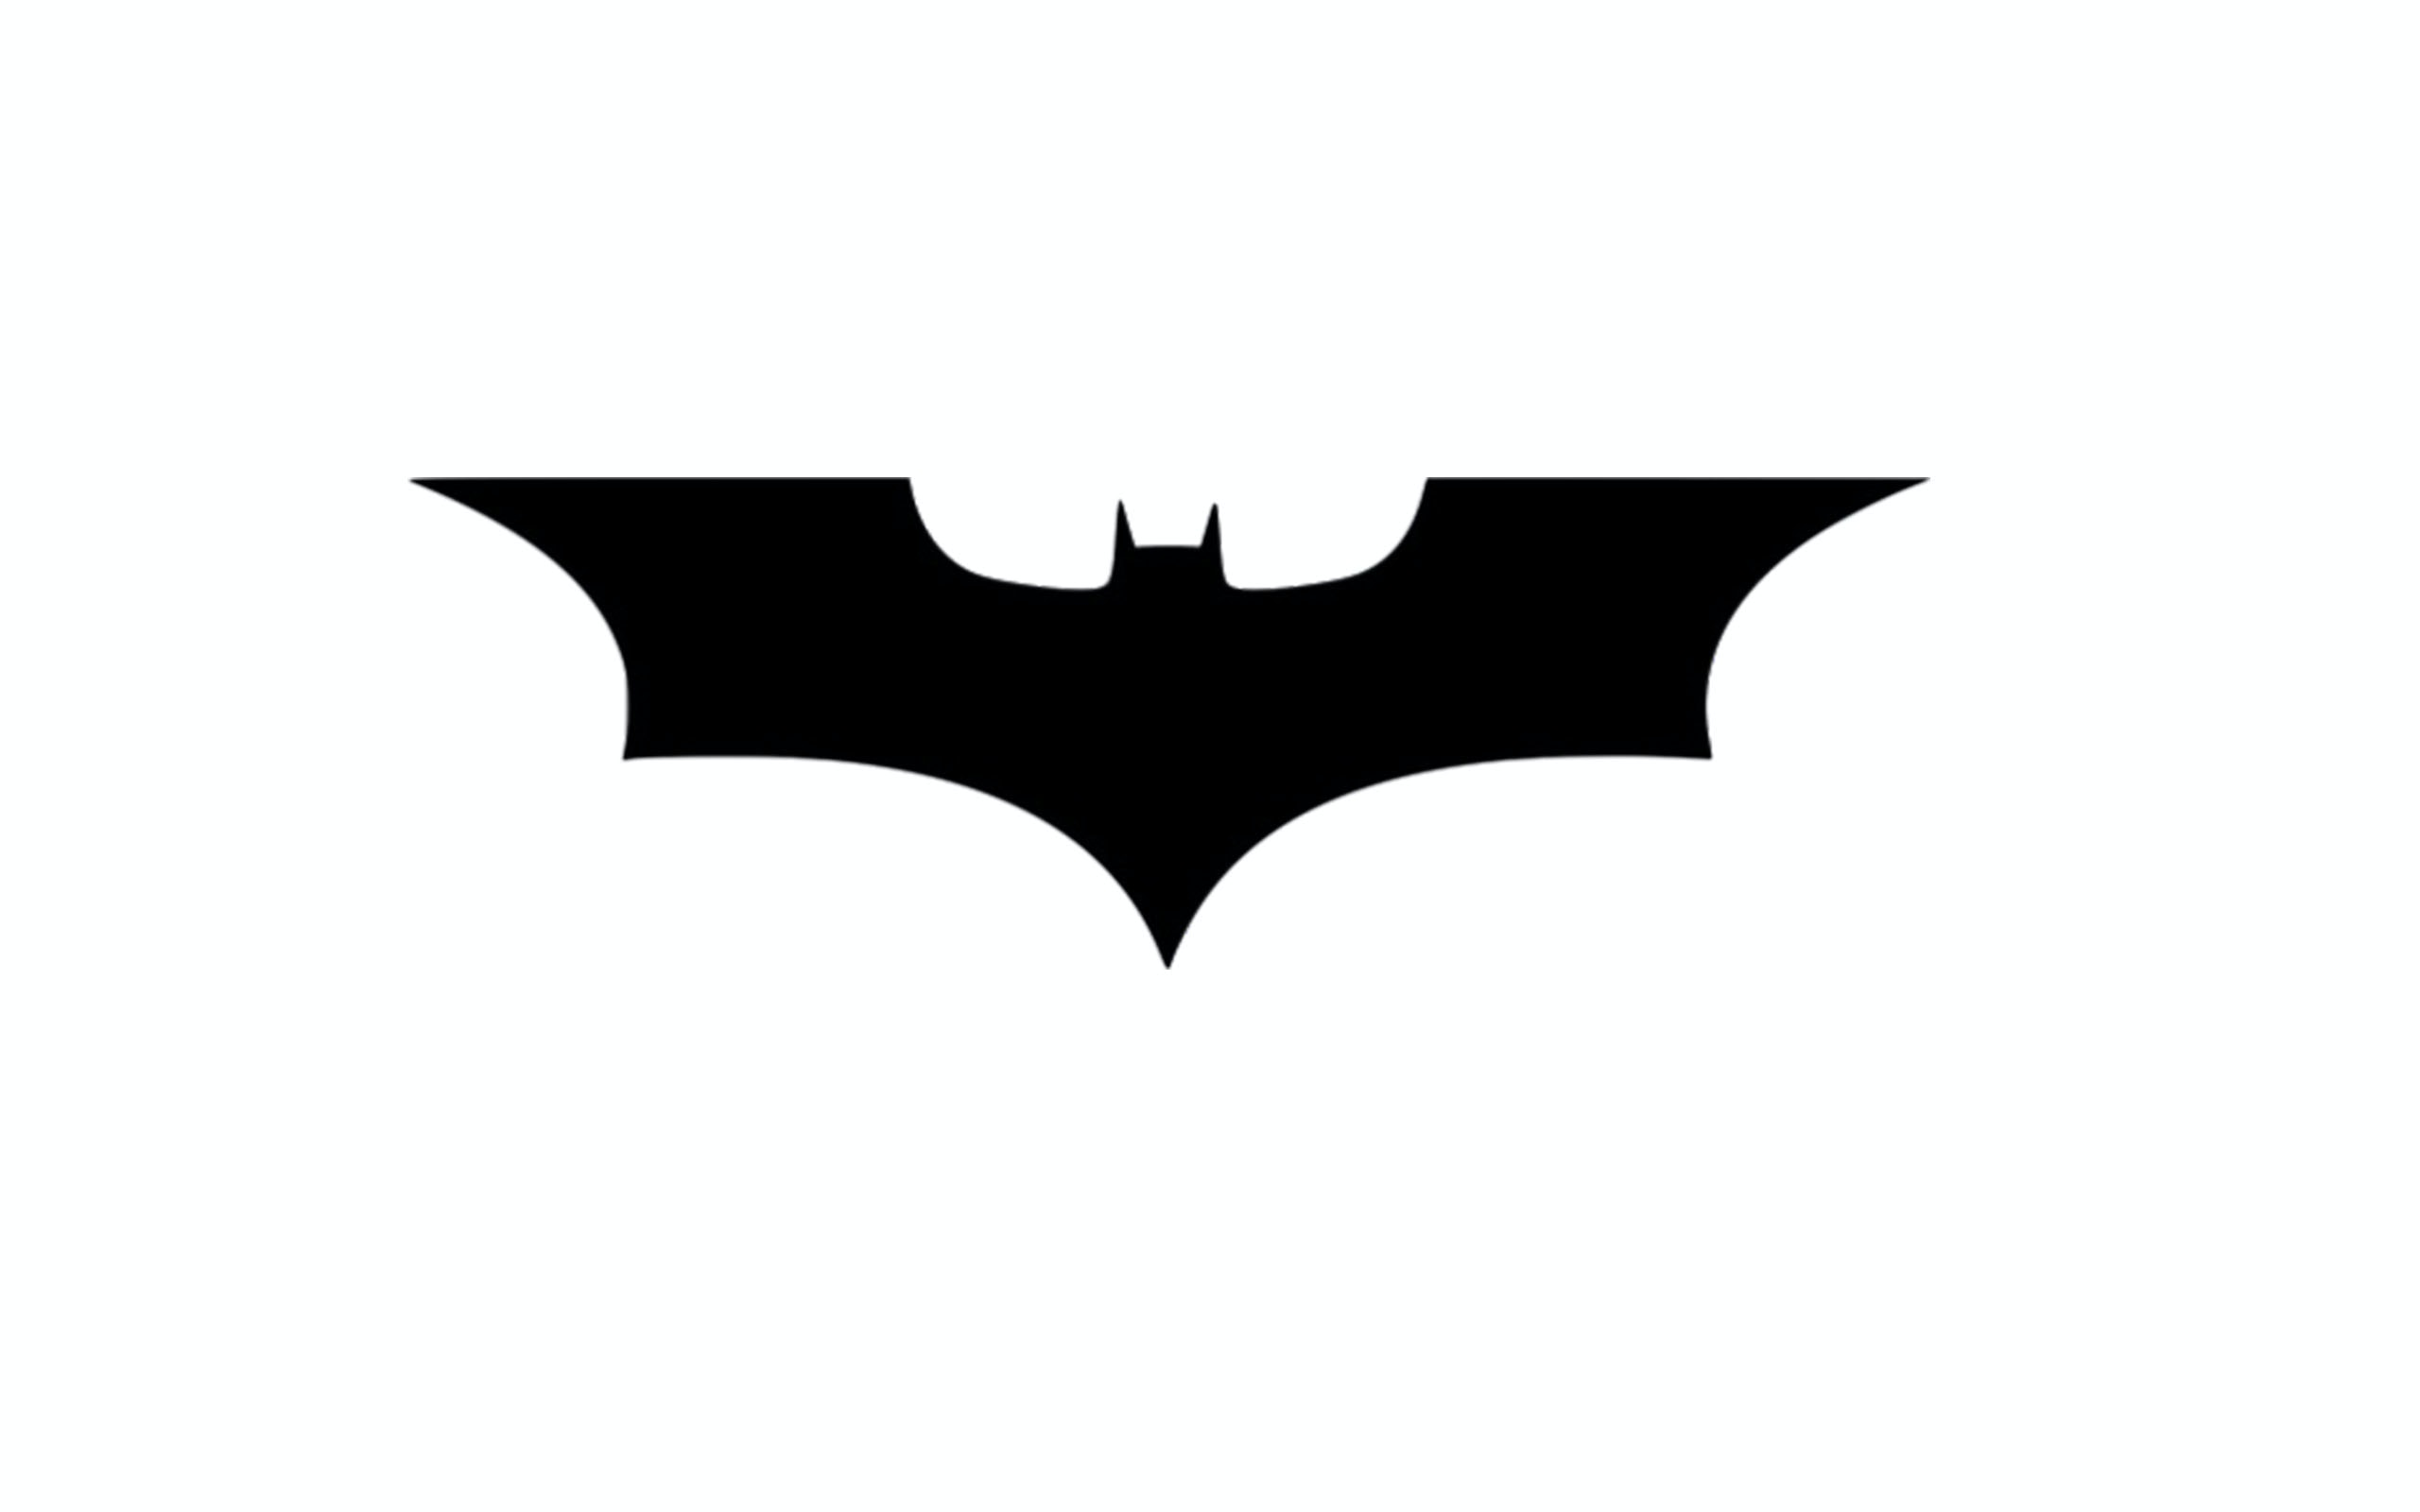 free stock photo of batman black and white logo rh pexels com batman logo black and white png black and white batman logo fabric